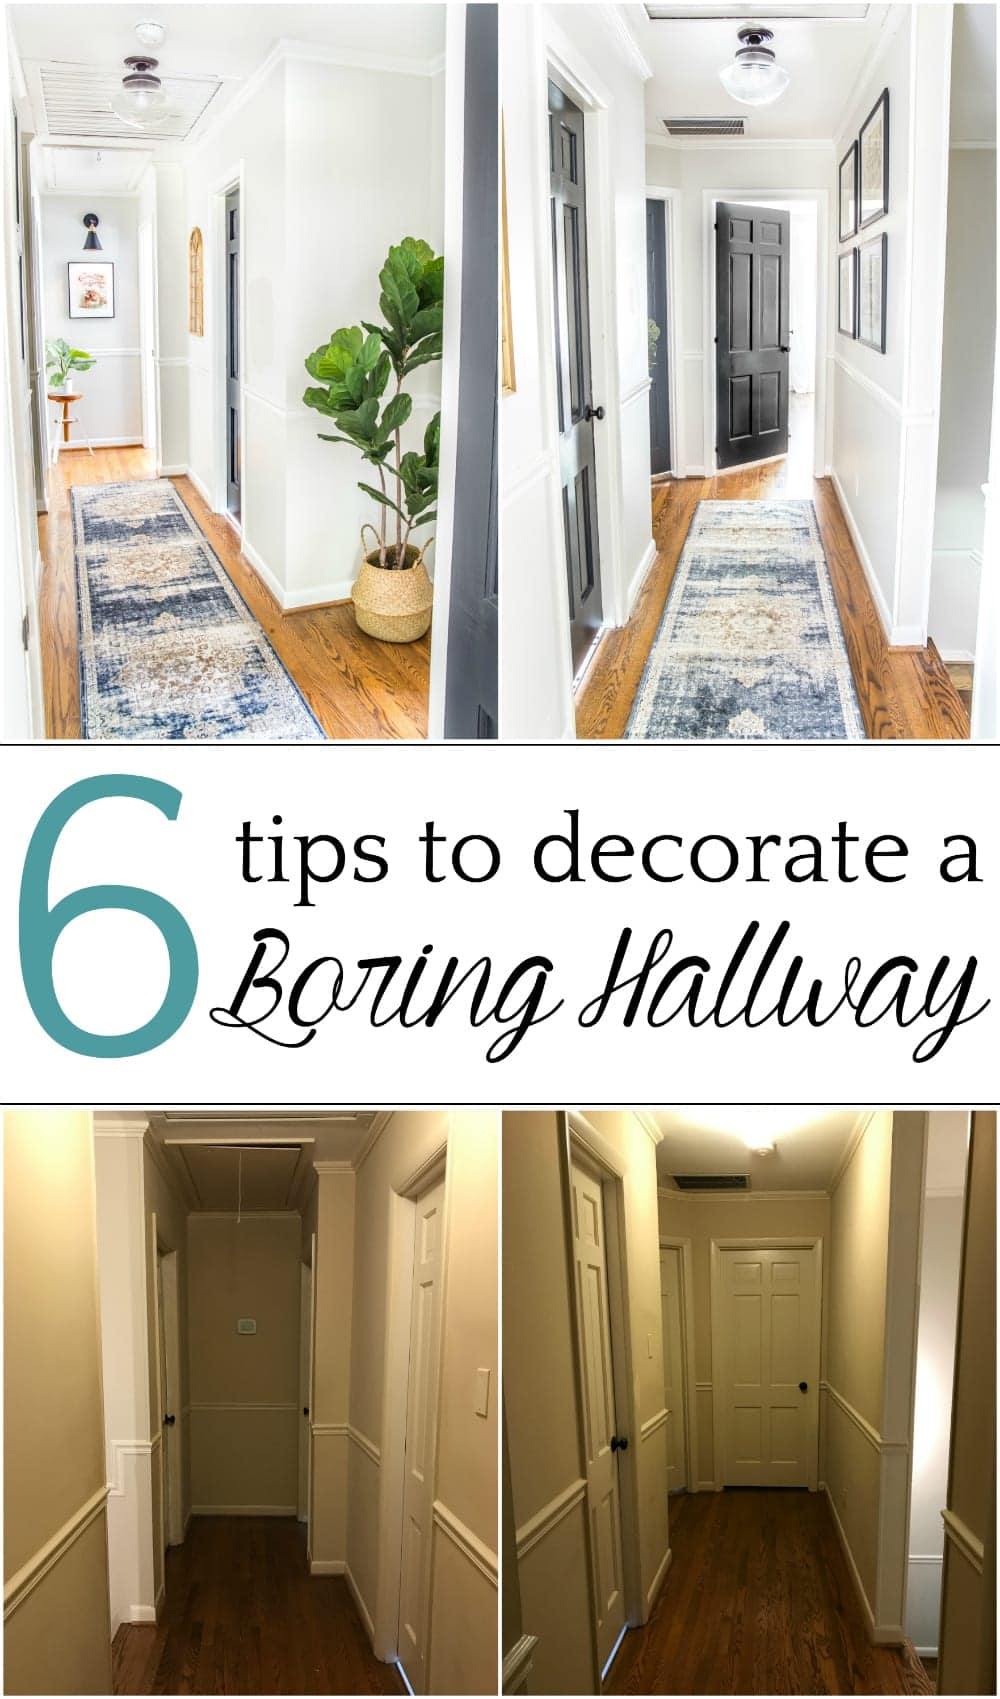 6 Tips to Decorate a Boring Hallway | blesserhouse.com - DIY and decorating ideas to add interest to a boring window-less hallway + thrifting project tutorials and free printables to pull it off inexpensively. #hallway #hallwaydecor #hallwaydecorating